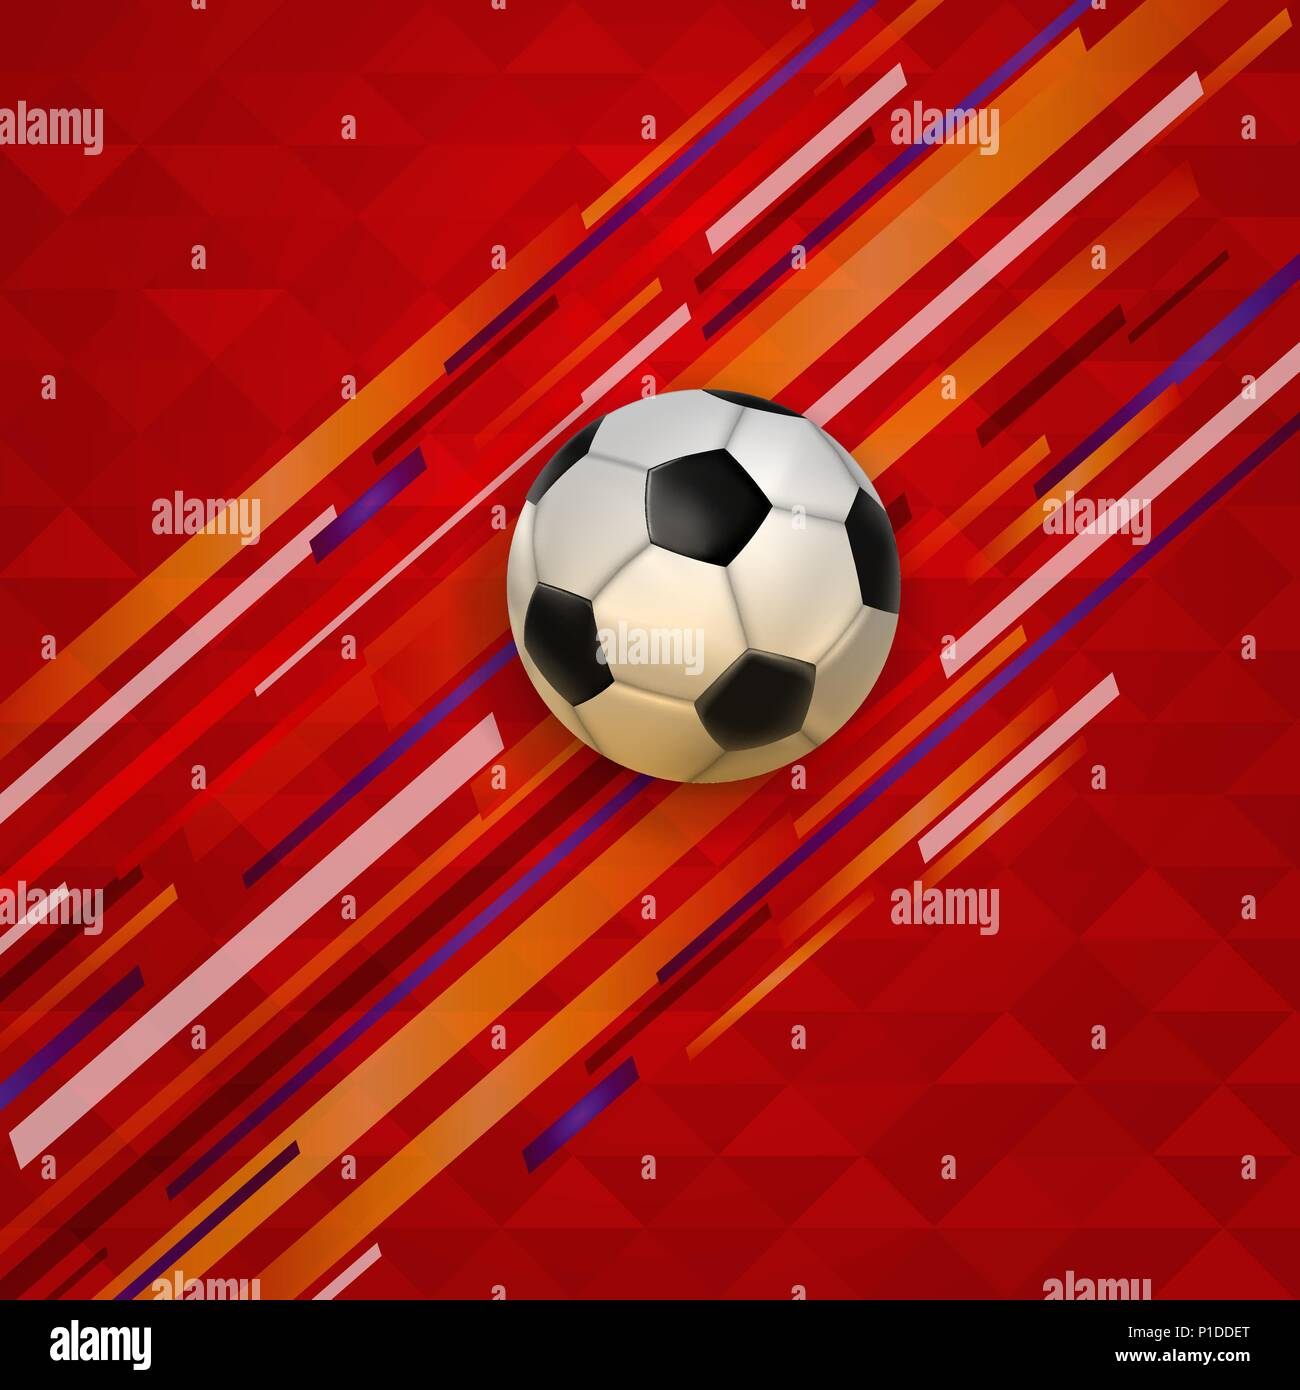 soccer background for football match realistic sports foot ball in